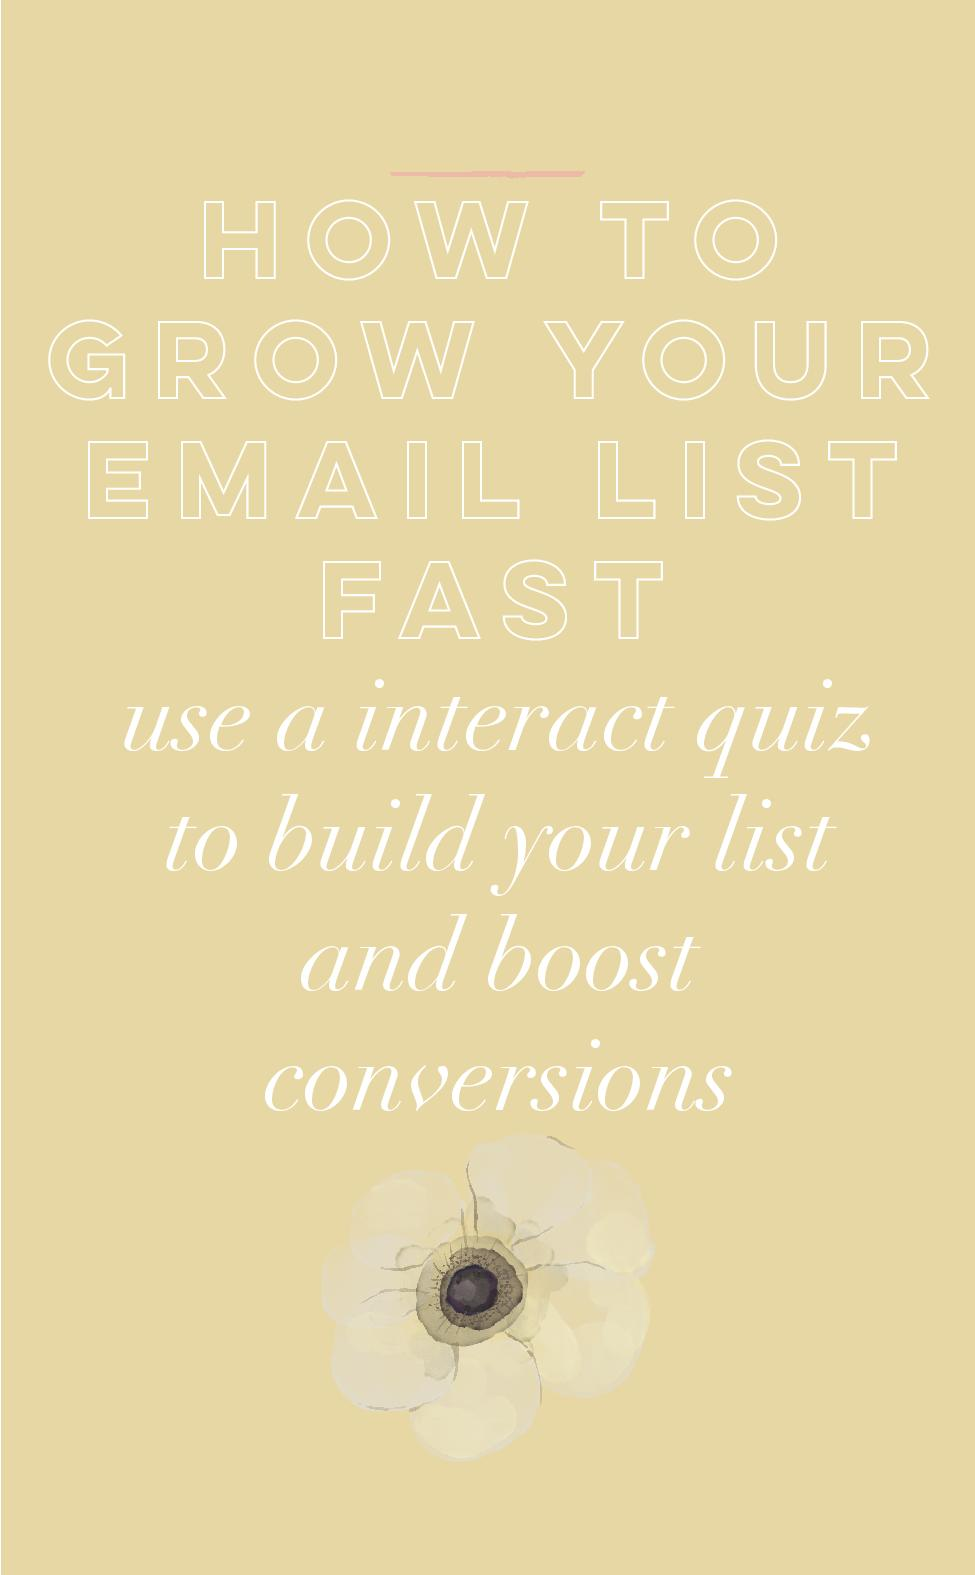 How to Grow Your Email List Fast.jpg